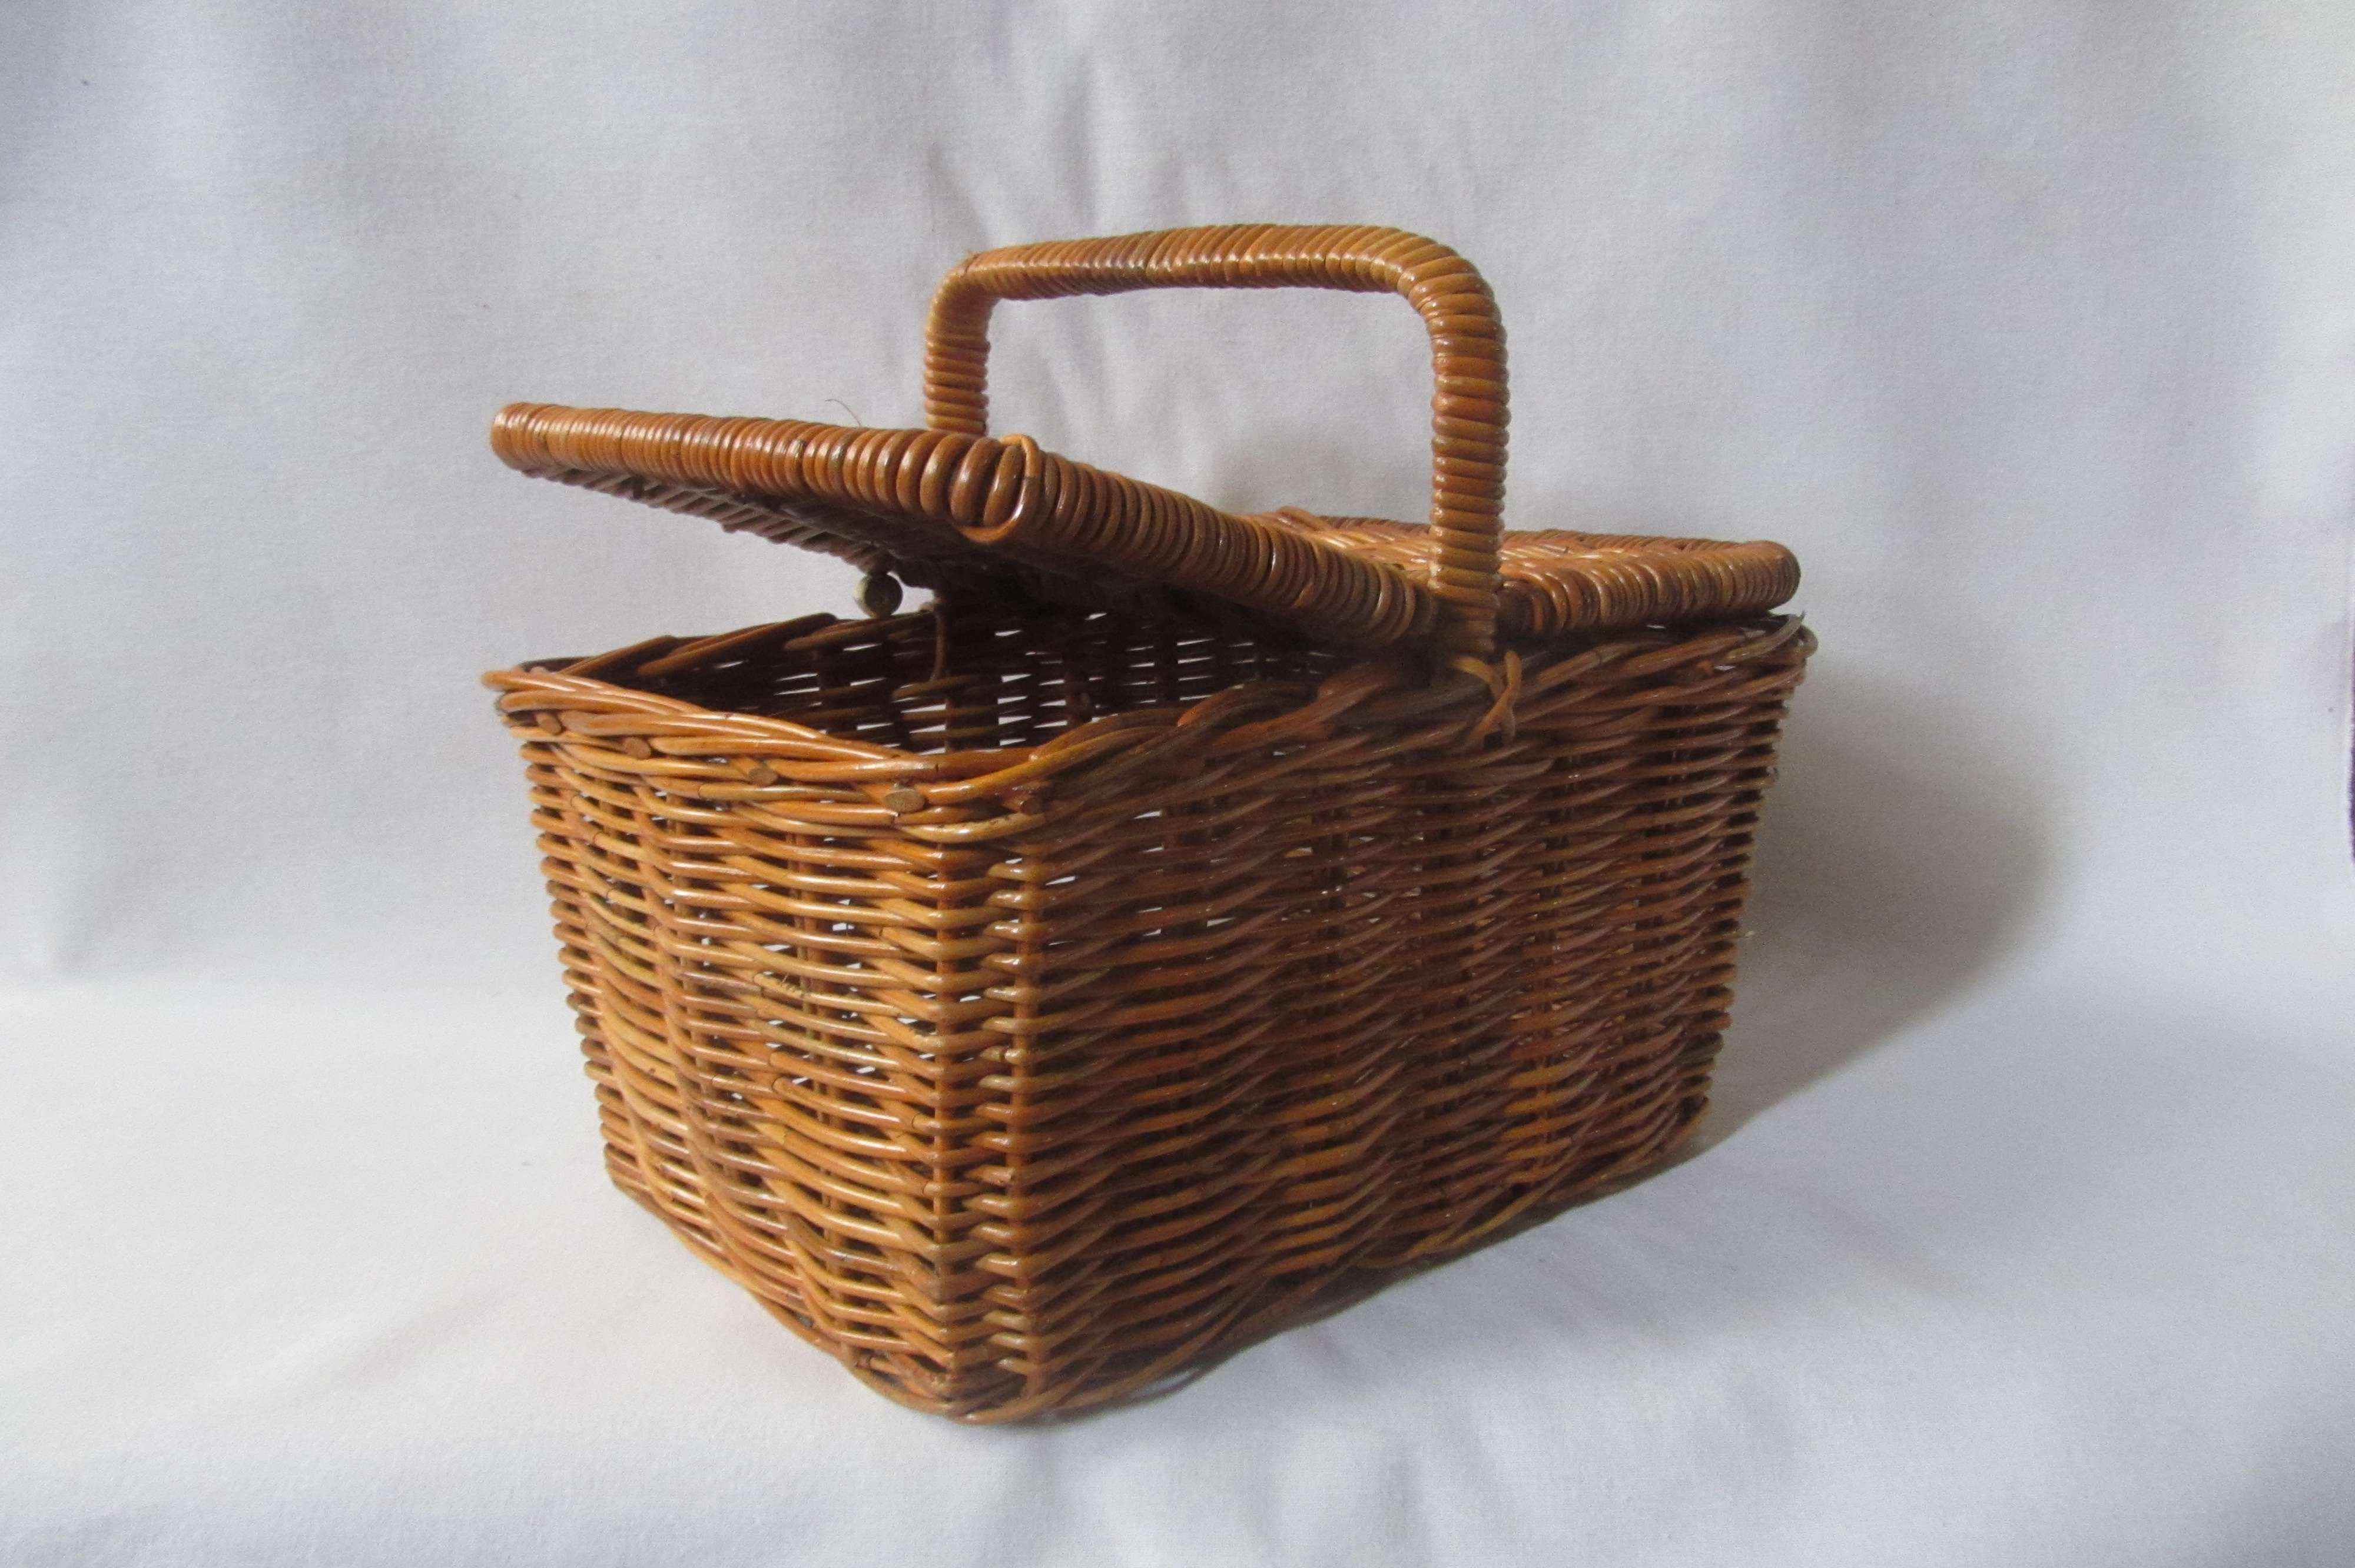 Portsea Furnishings Supply Cane Furniture Online In Australia Browse Our Wide Range Of Cane Home Furniture And Rattan Picnic Basket